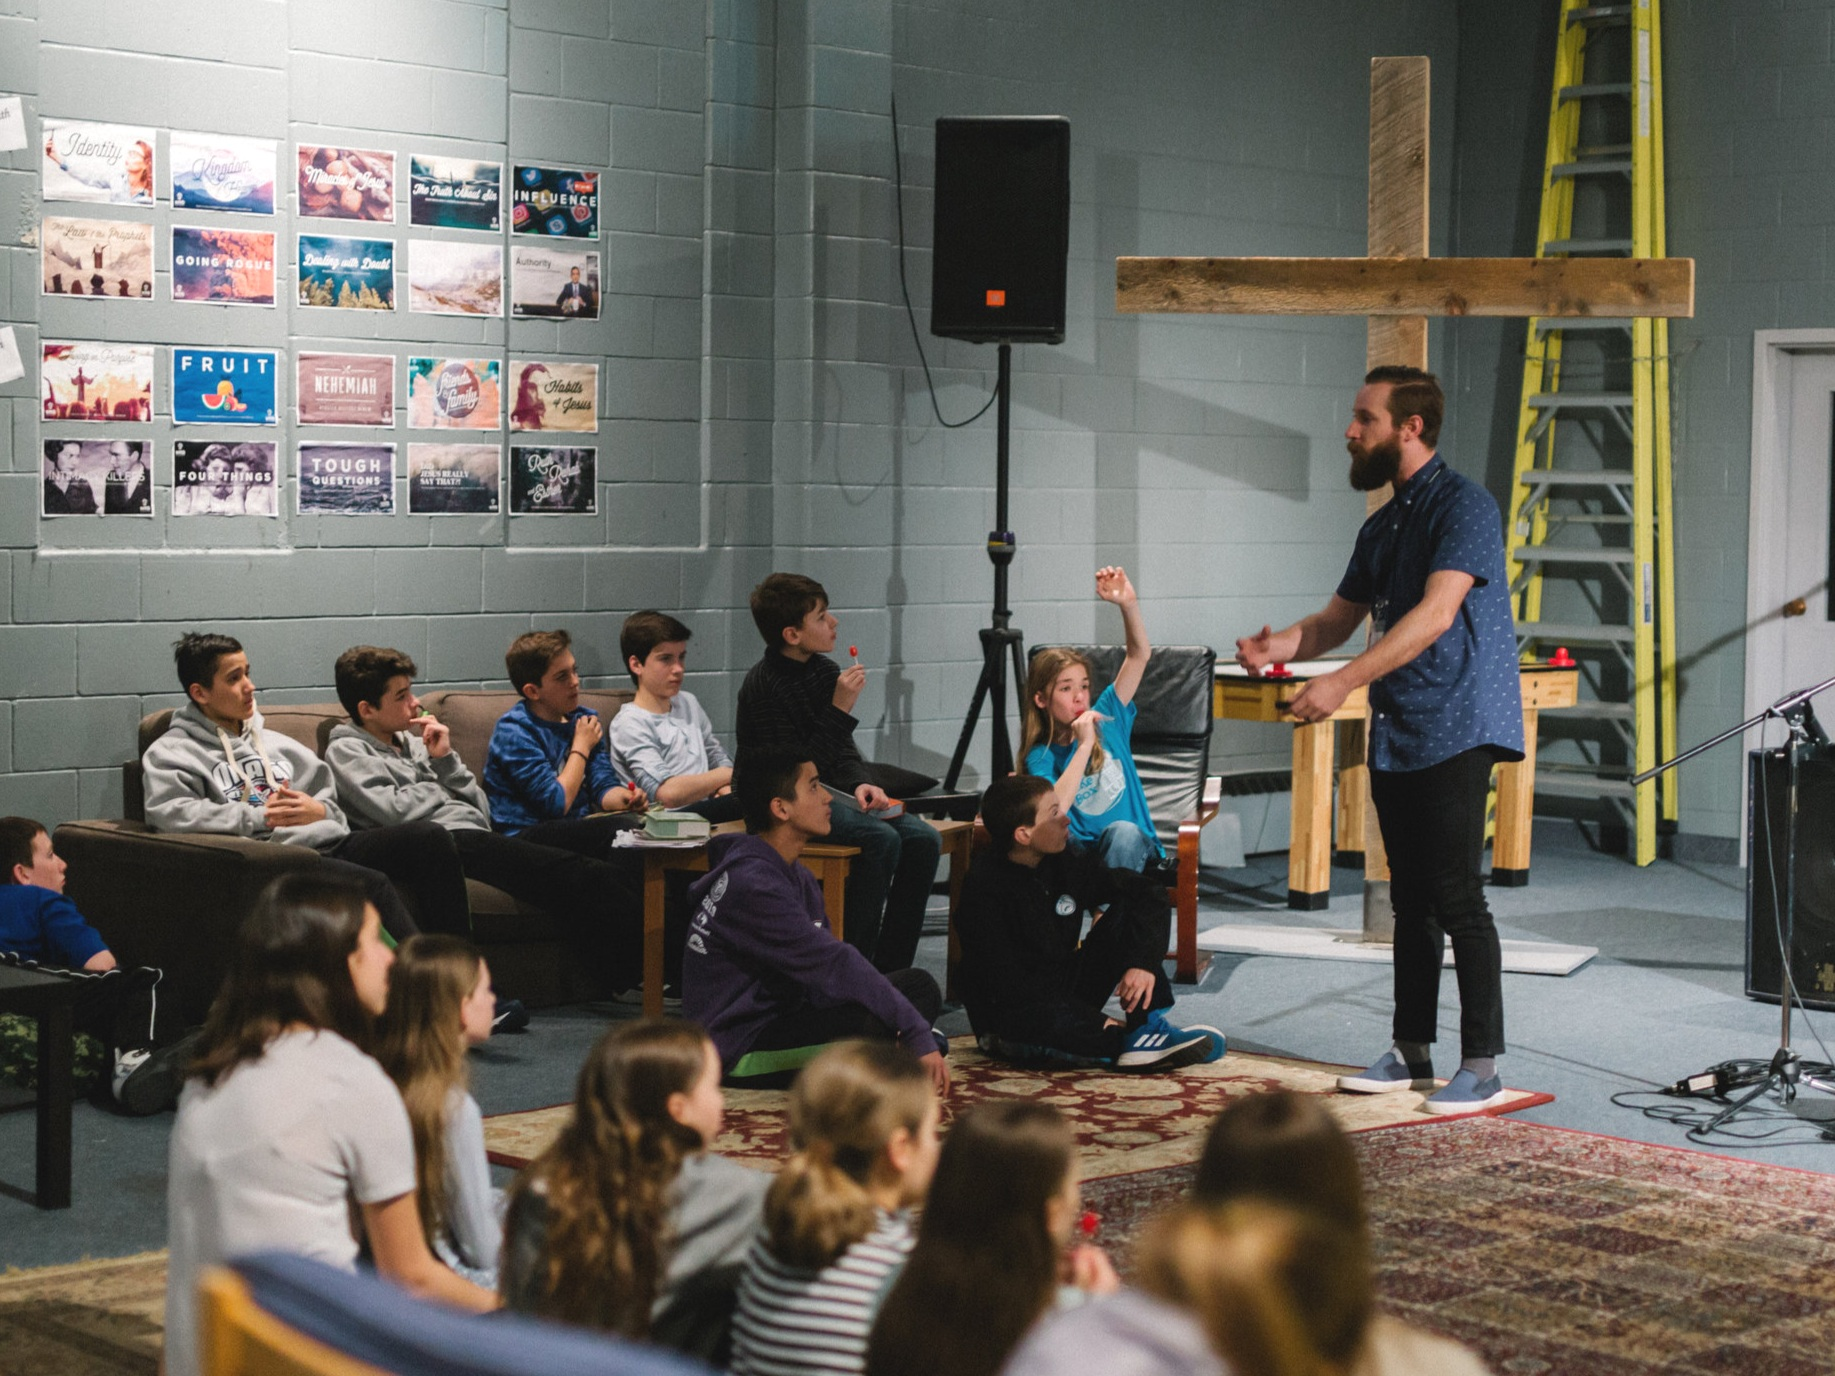 Youth Ministry - Programs and events for kids in Grades 6-12